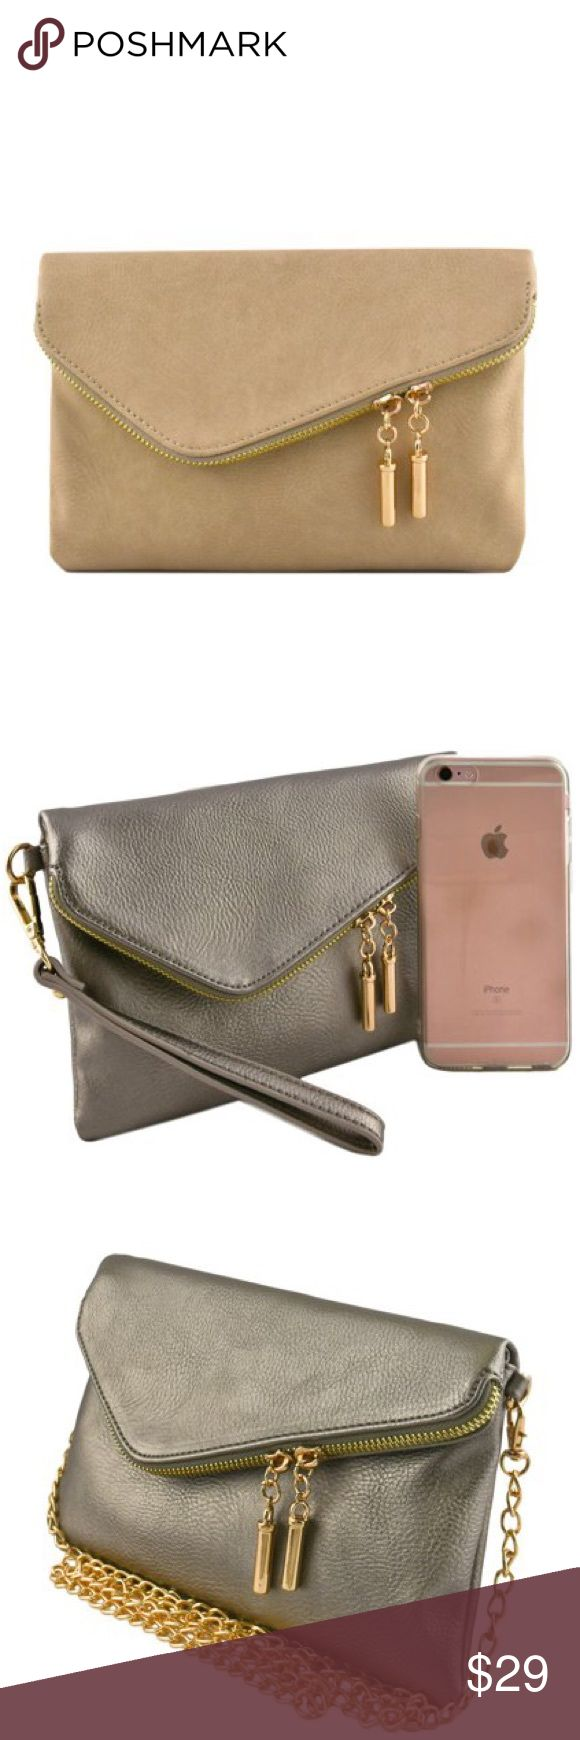 """Coming soon! Beige clutch. Beige color (first pic) envelope clutch with zipper and magnetic flap. Textured faux leather, fully lined, cardholder inside, and zipped pocket inside. Detachable 7"""" wrist strap and 46"""" chain. 9""""w x 6""""h folded. 9""""w x 10""""h unfolded. One picture shows an iPhone 6s Plus for your reference. Perfect little beige clutch! Bags Clutches & Wristlets"""